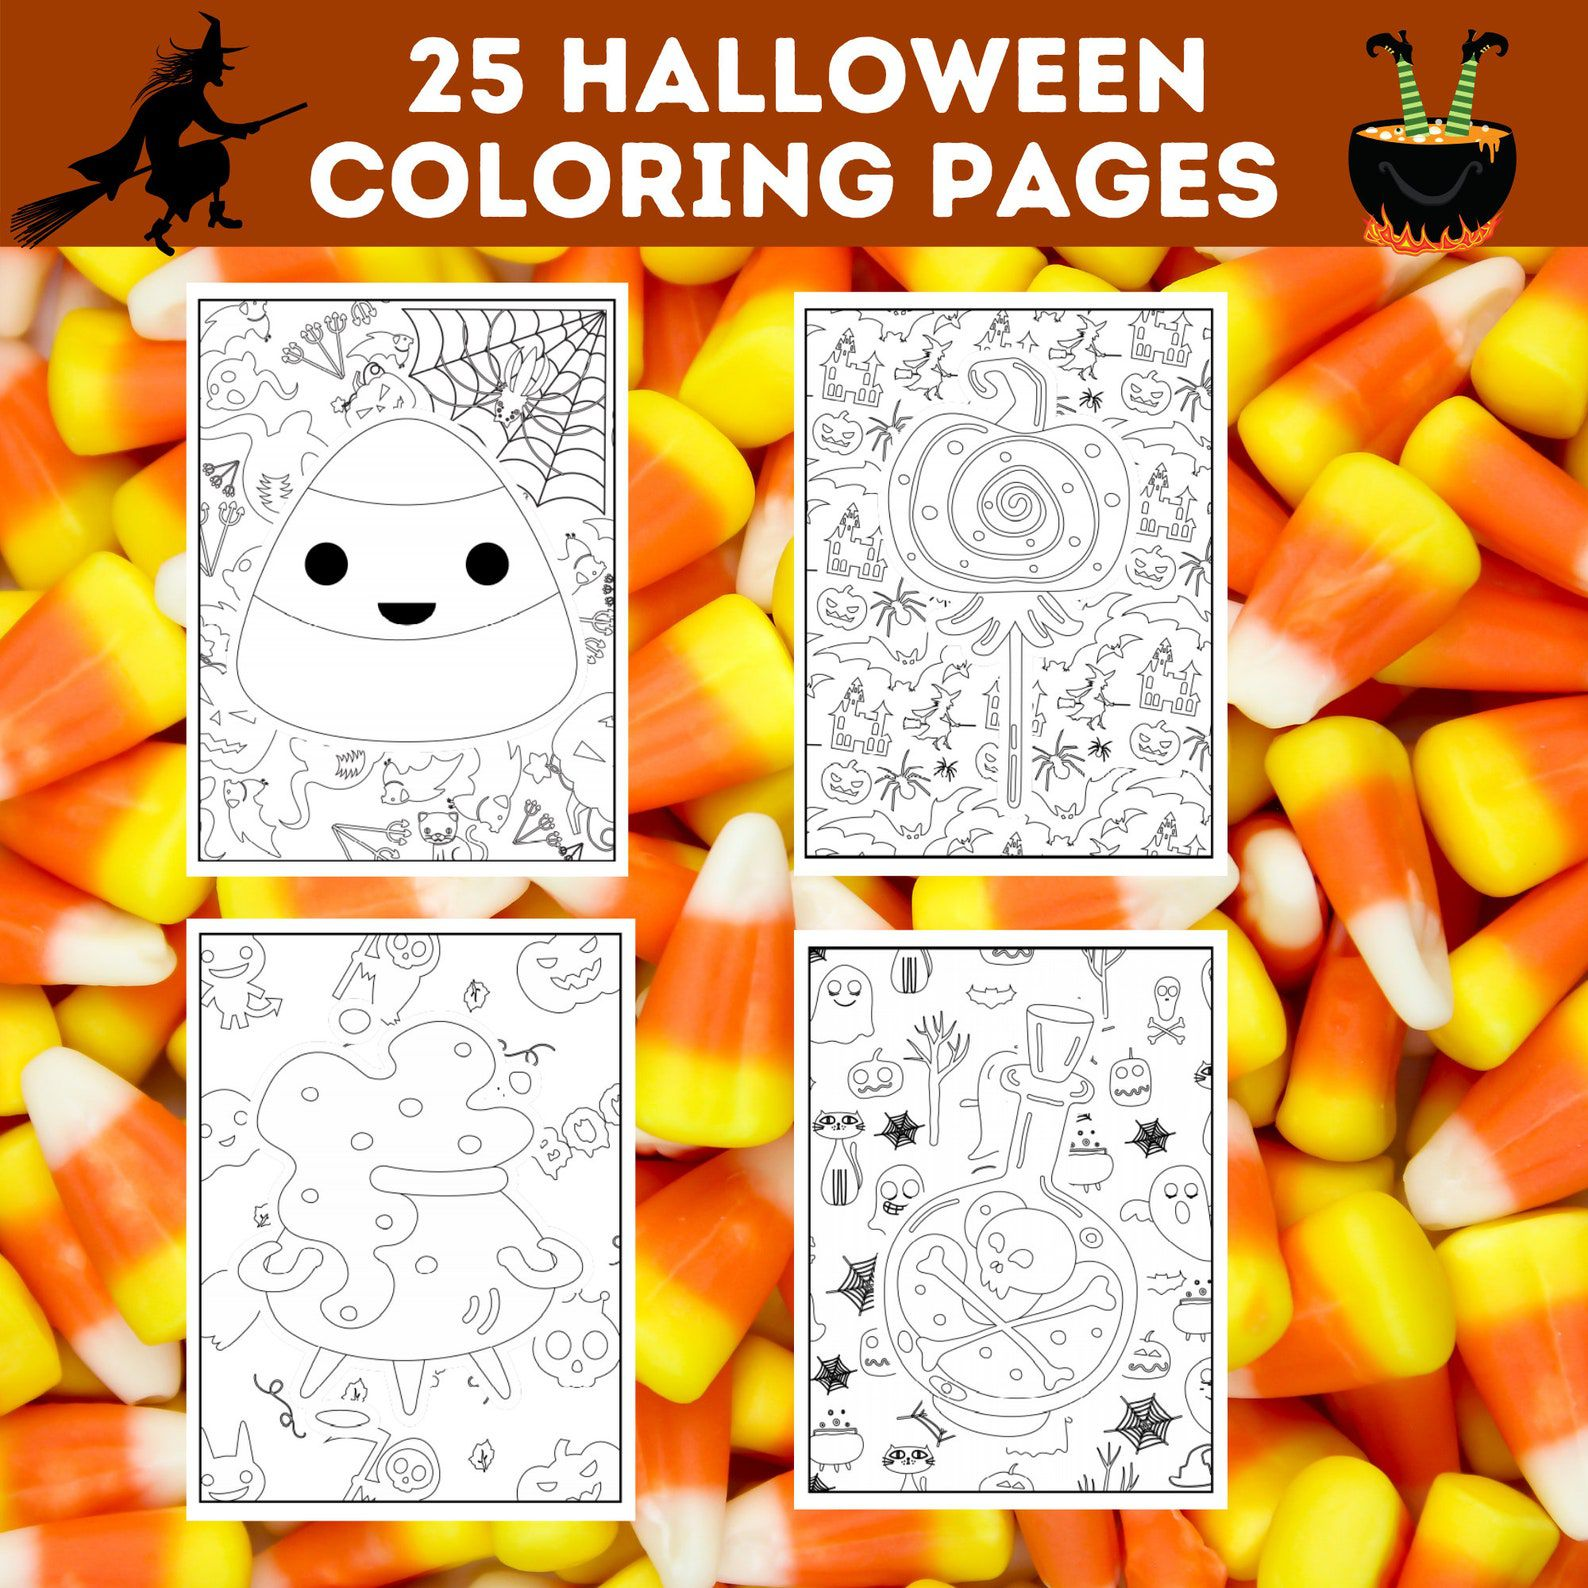 Candy corn and witch's pot coloring pages